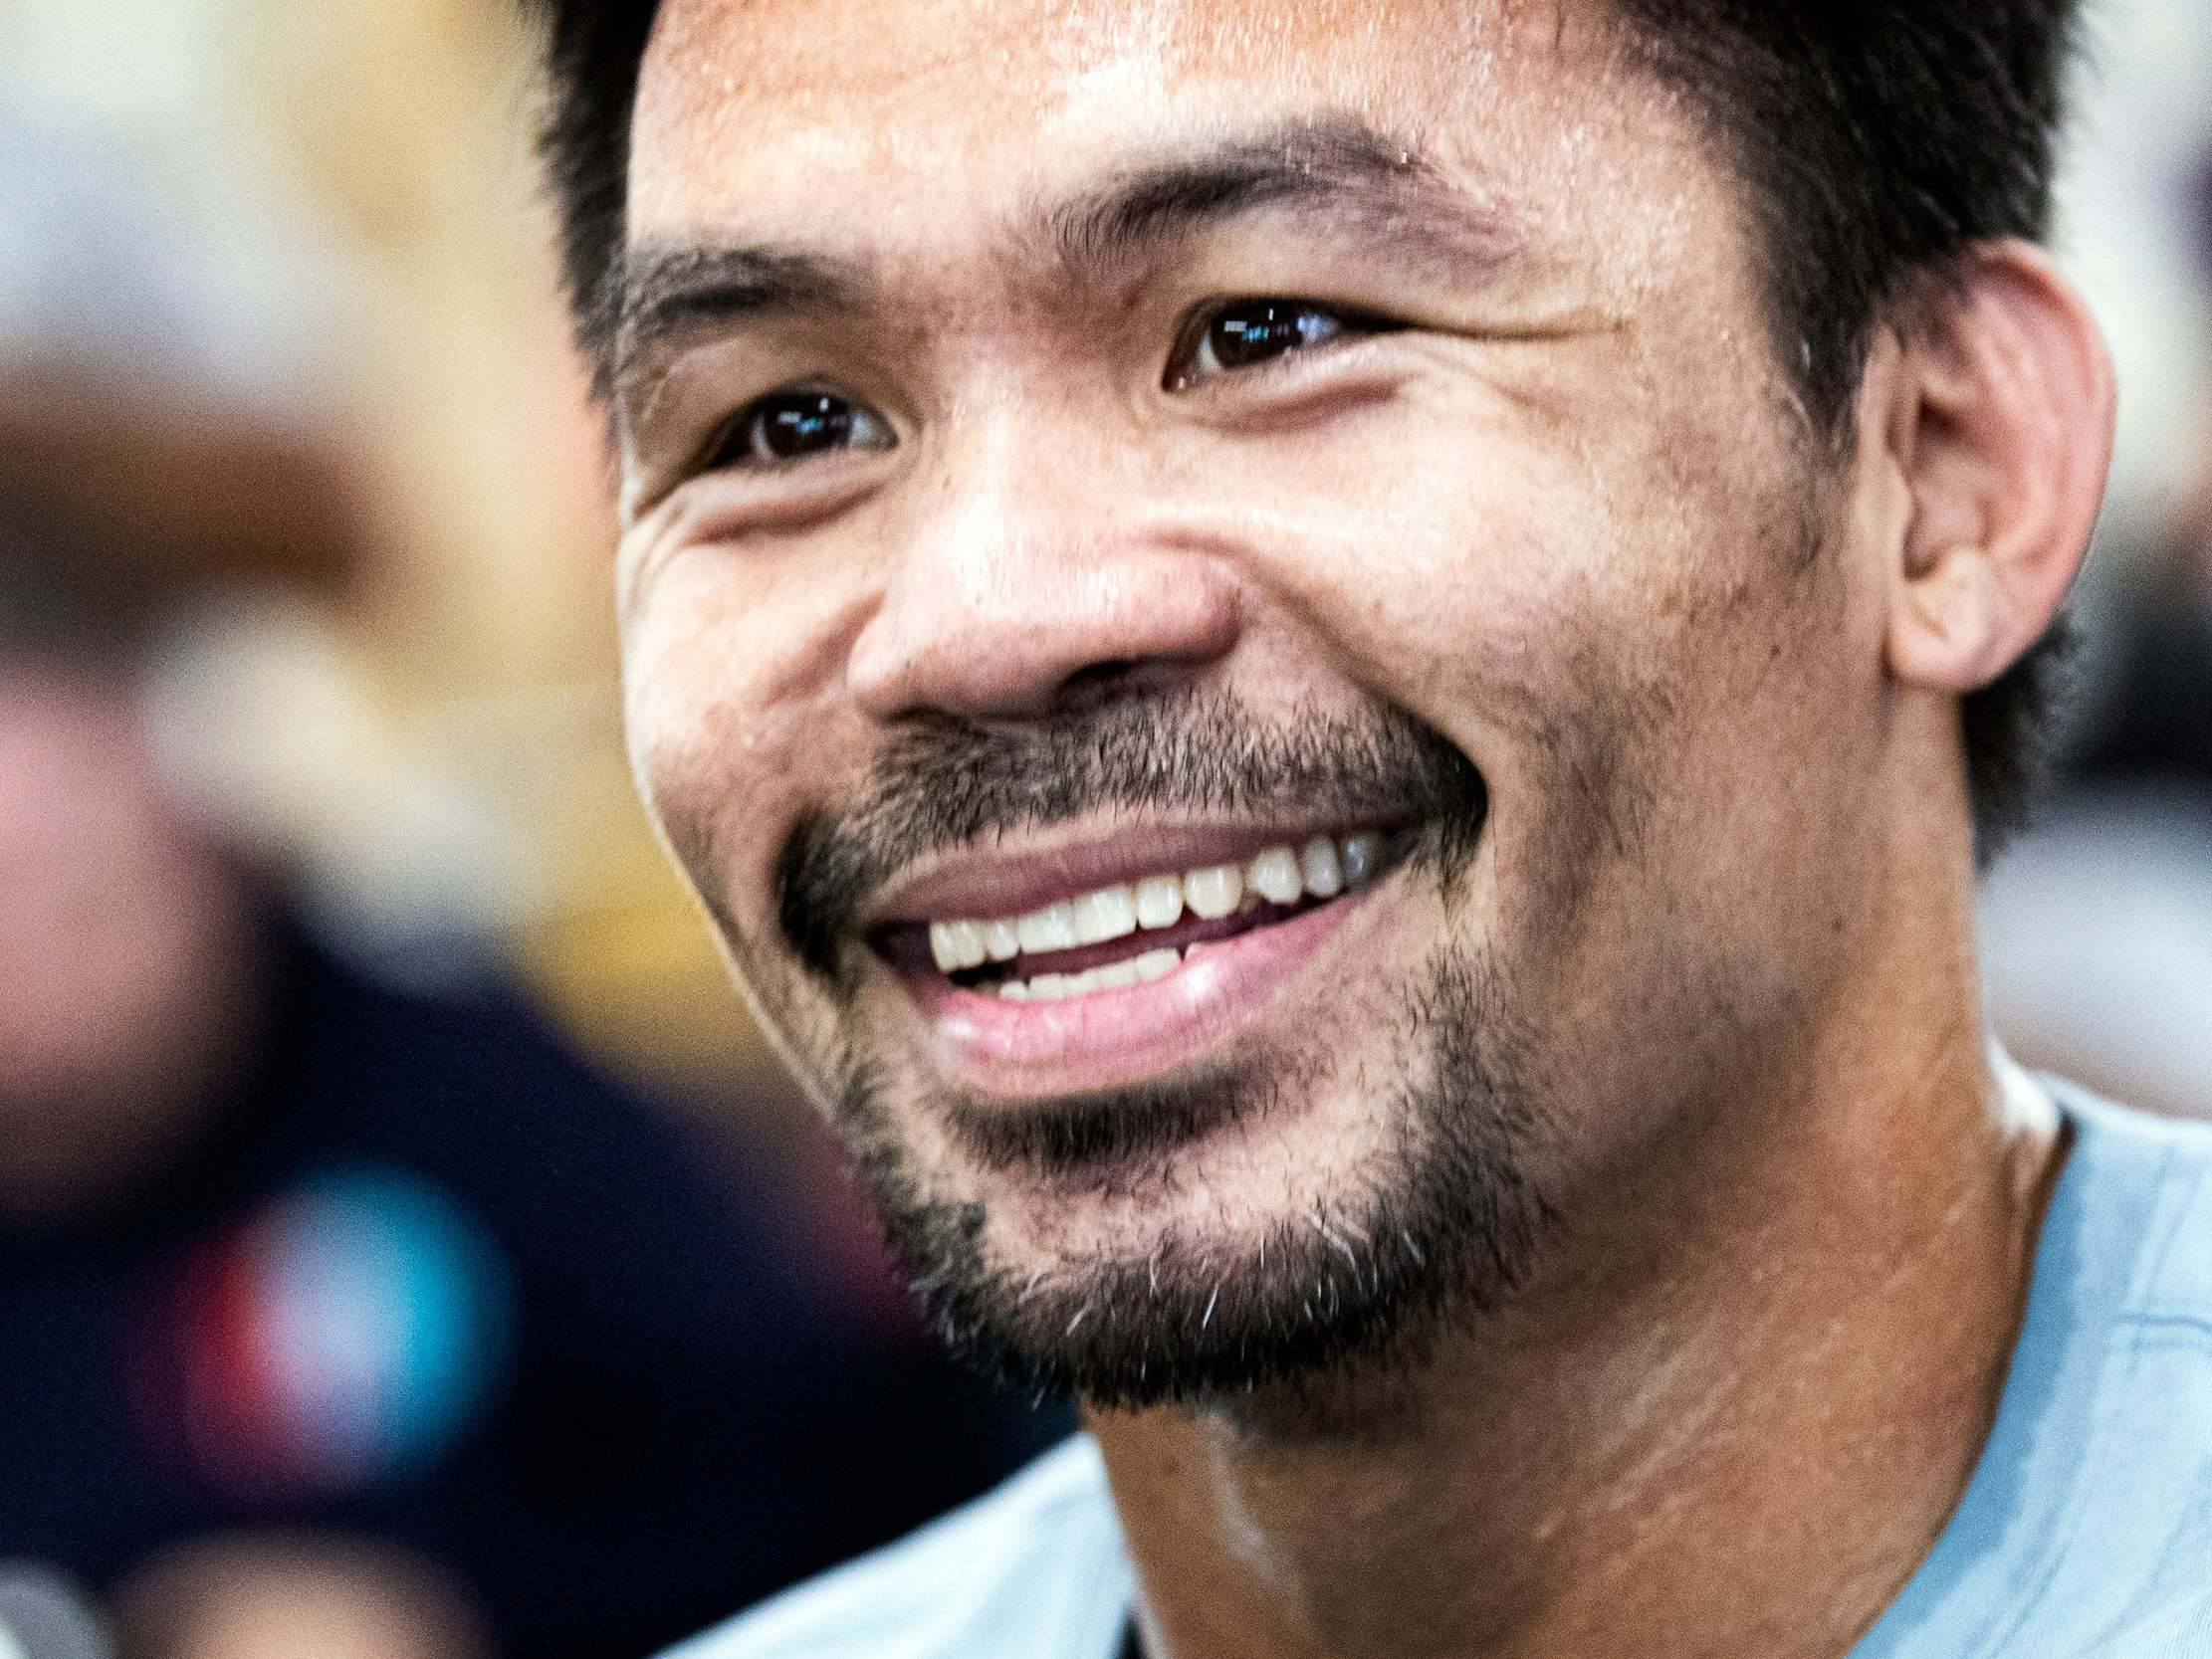 Manny Pacquiao vs Keith Thurman: The Pacman Story rolls on as